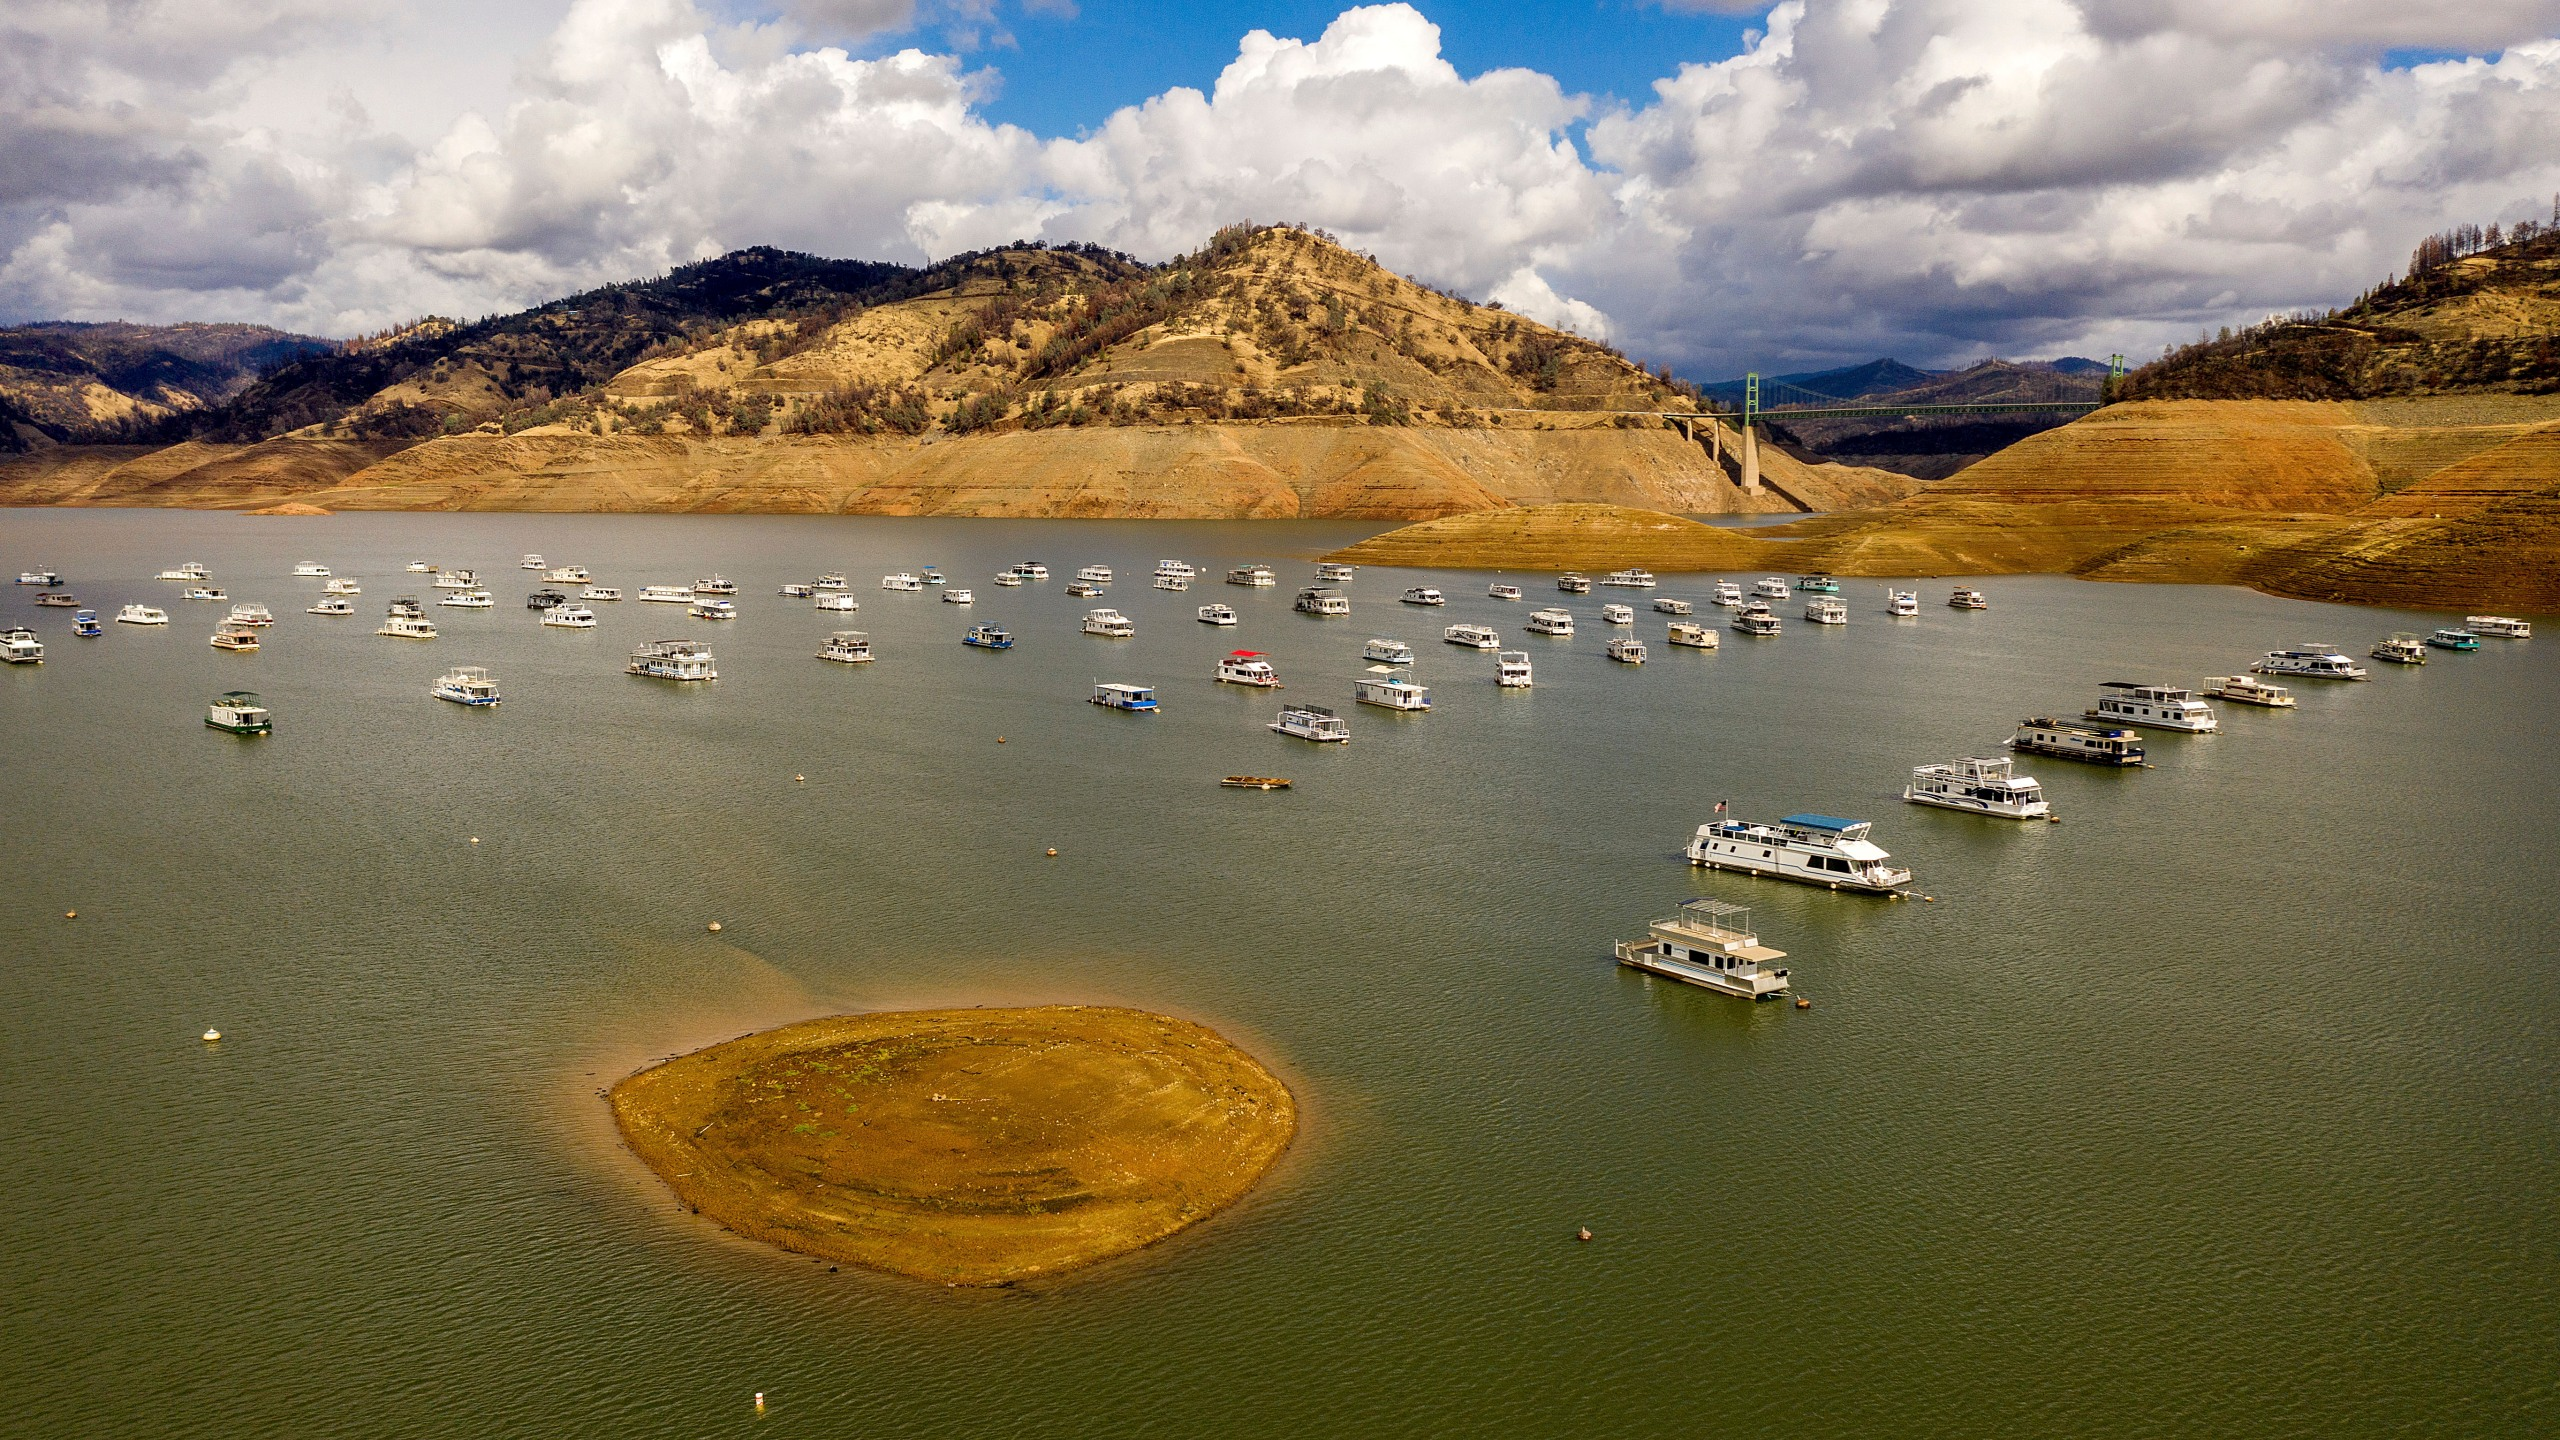 Houseboats float on Lake Oroville, Monday, Oct. 25, 2021, in Oroville, Calif. Recent storms raised the reservoir more than 16 feet, according to the California Department of Water Resources. (AP Photo/Noah Berger)